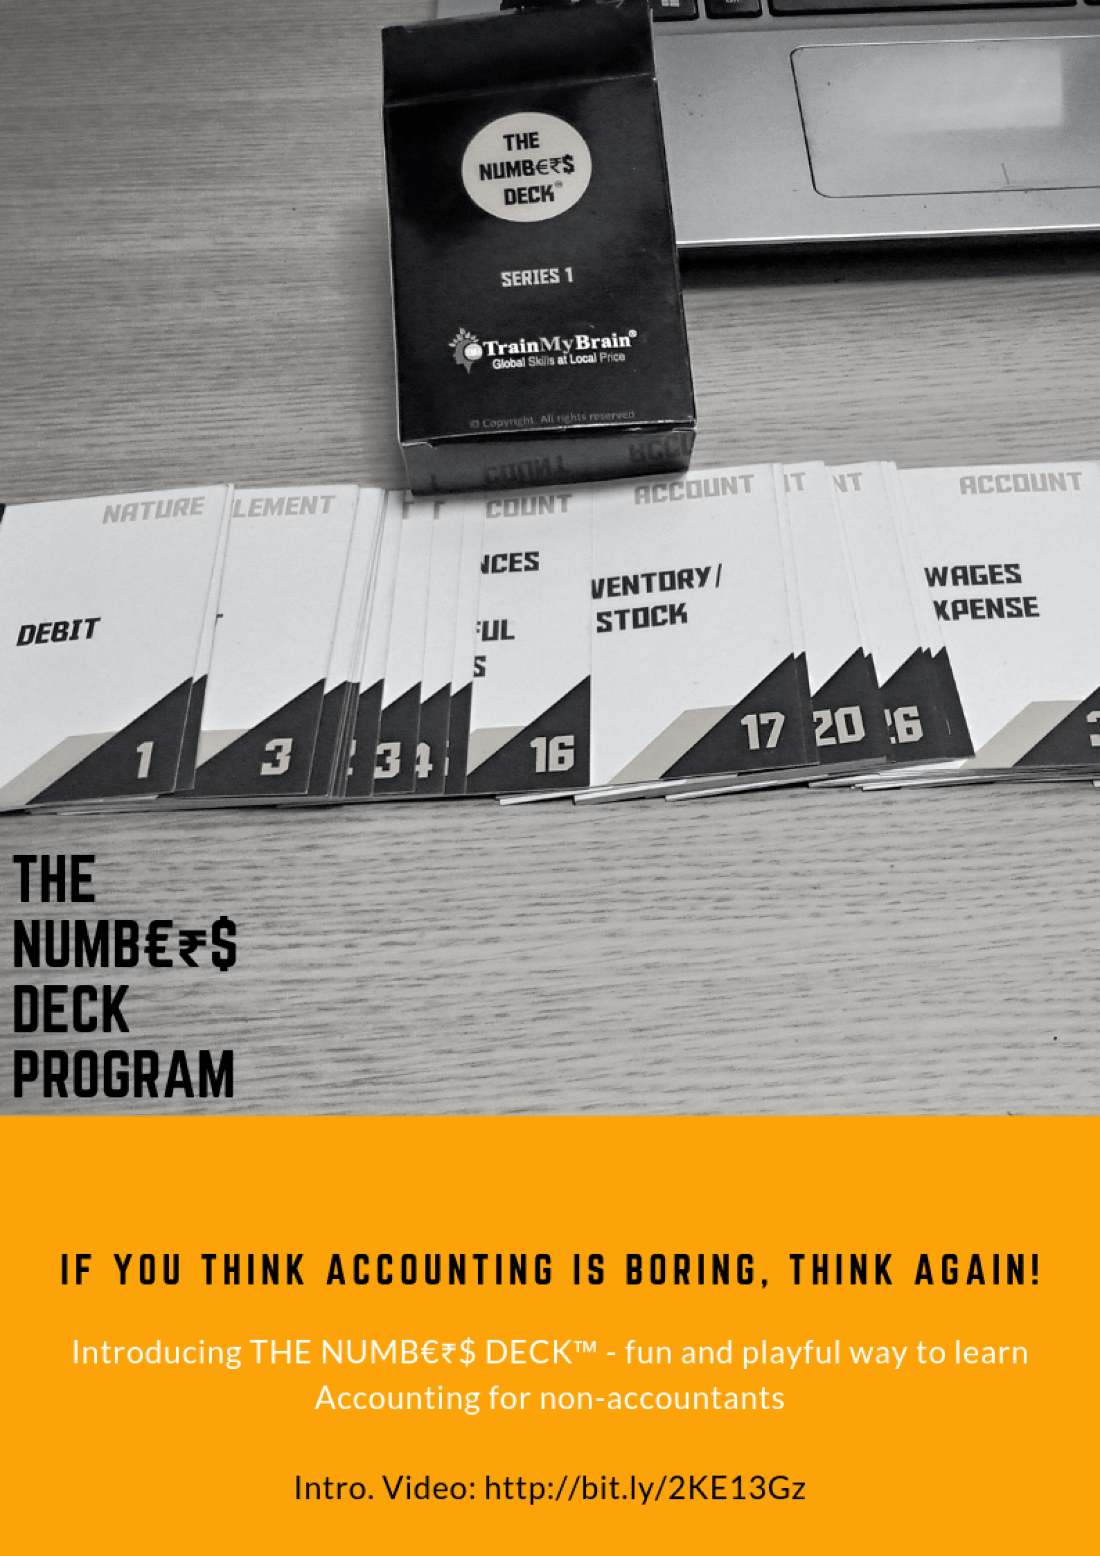 The Numbers Deck - Accounting for Non-Accountants using playful deck of 52 cards